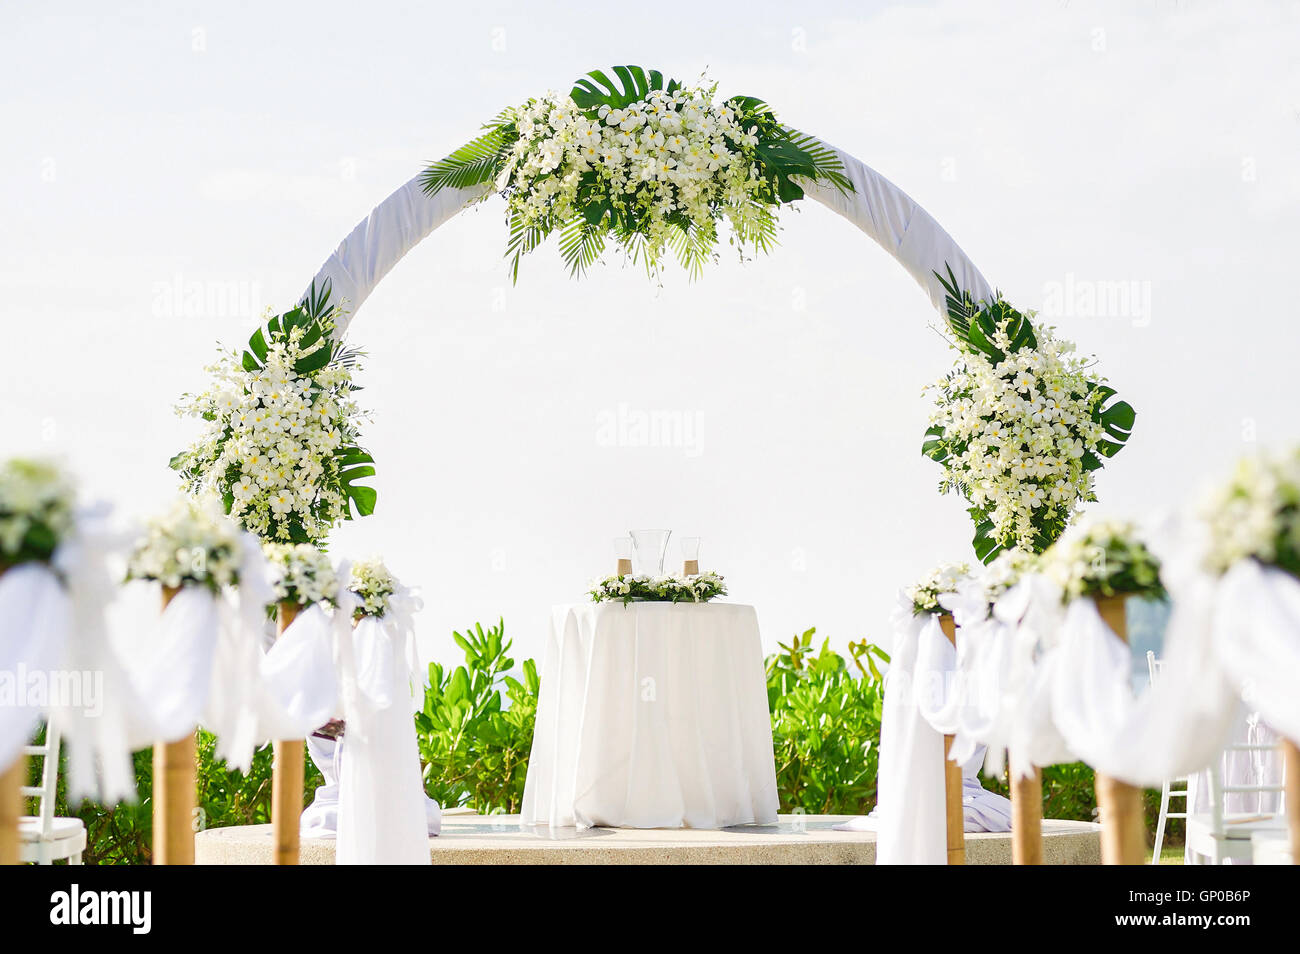 Simple style wedding arch and decoration venue setup on tropical simple style wedding arch and decoration venue setup on tropical beach outdoor beach wedding junglespirit Image collections